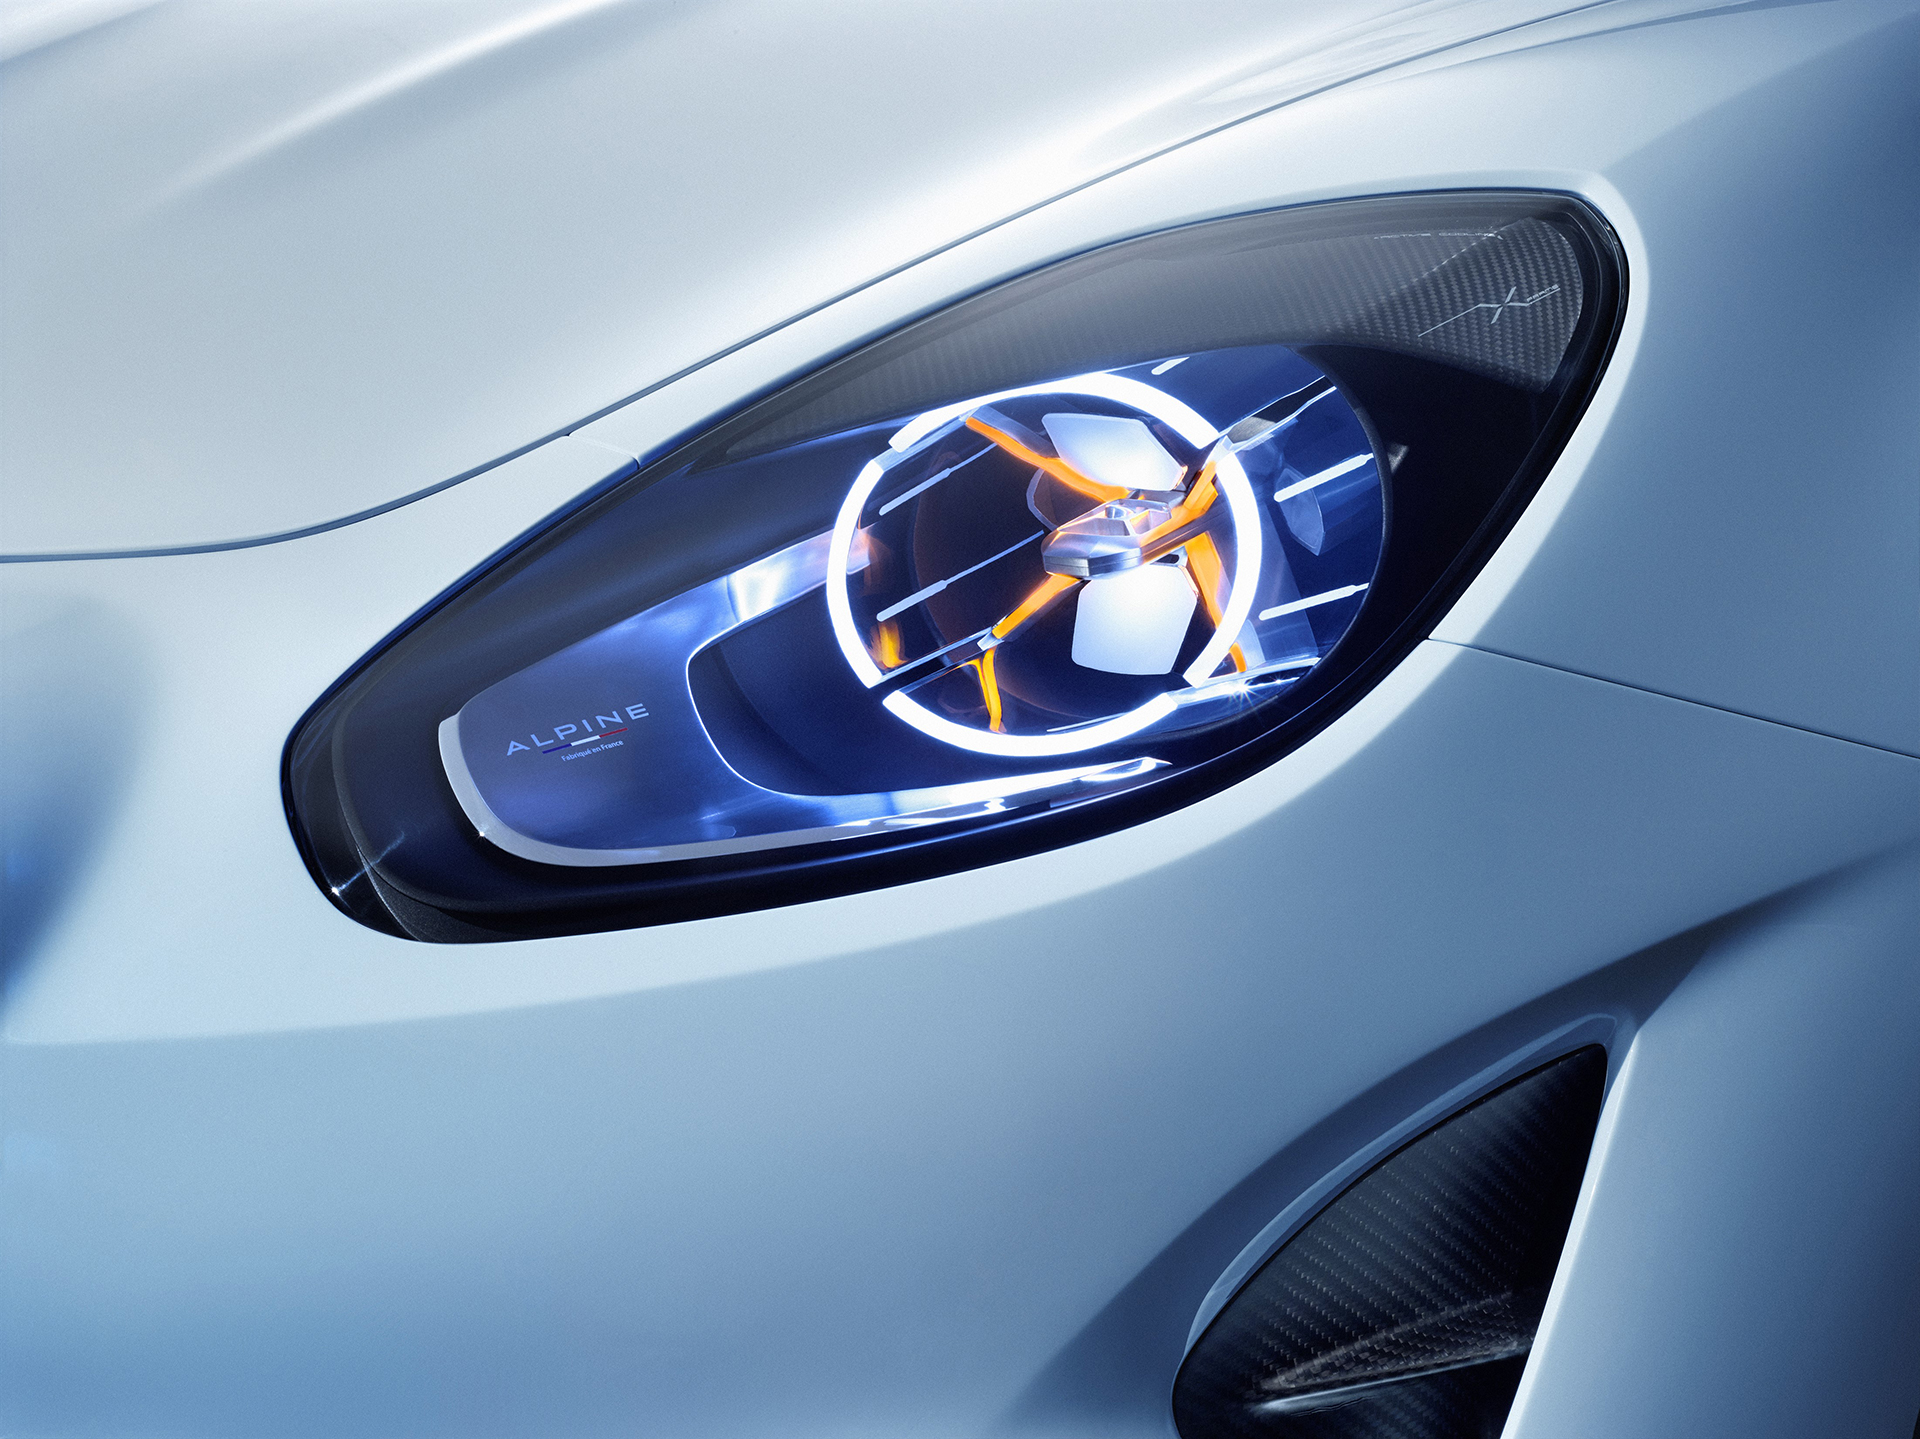 Alpine Vision 2016 - optique avant / front light